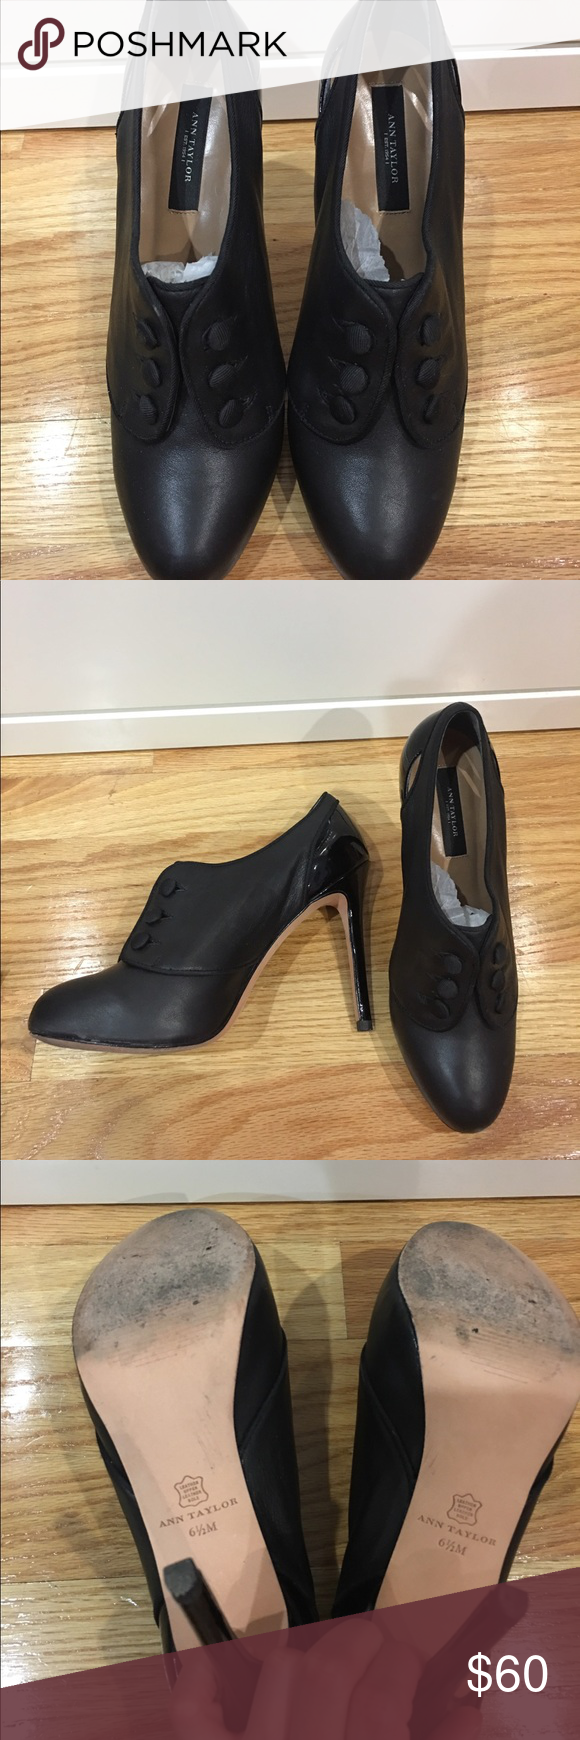 """Gently used ankle boots Gently used Ann Taylor ankle booties in black leather. Heel is 4"""" with 1"""" platform on the front. Heel is in perfect condition. Ann Taylor Shoes Ankle Boots & Booties"""